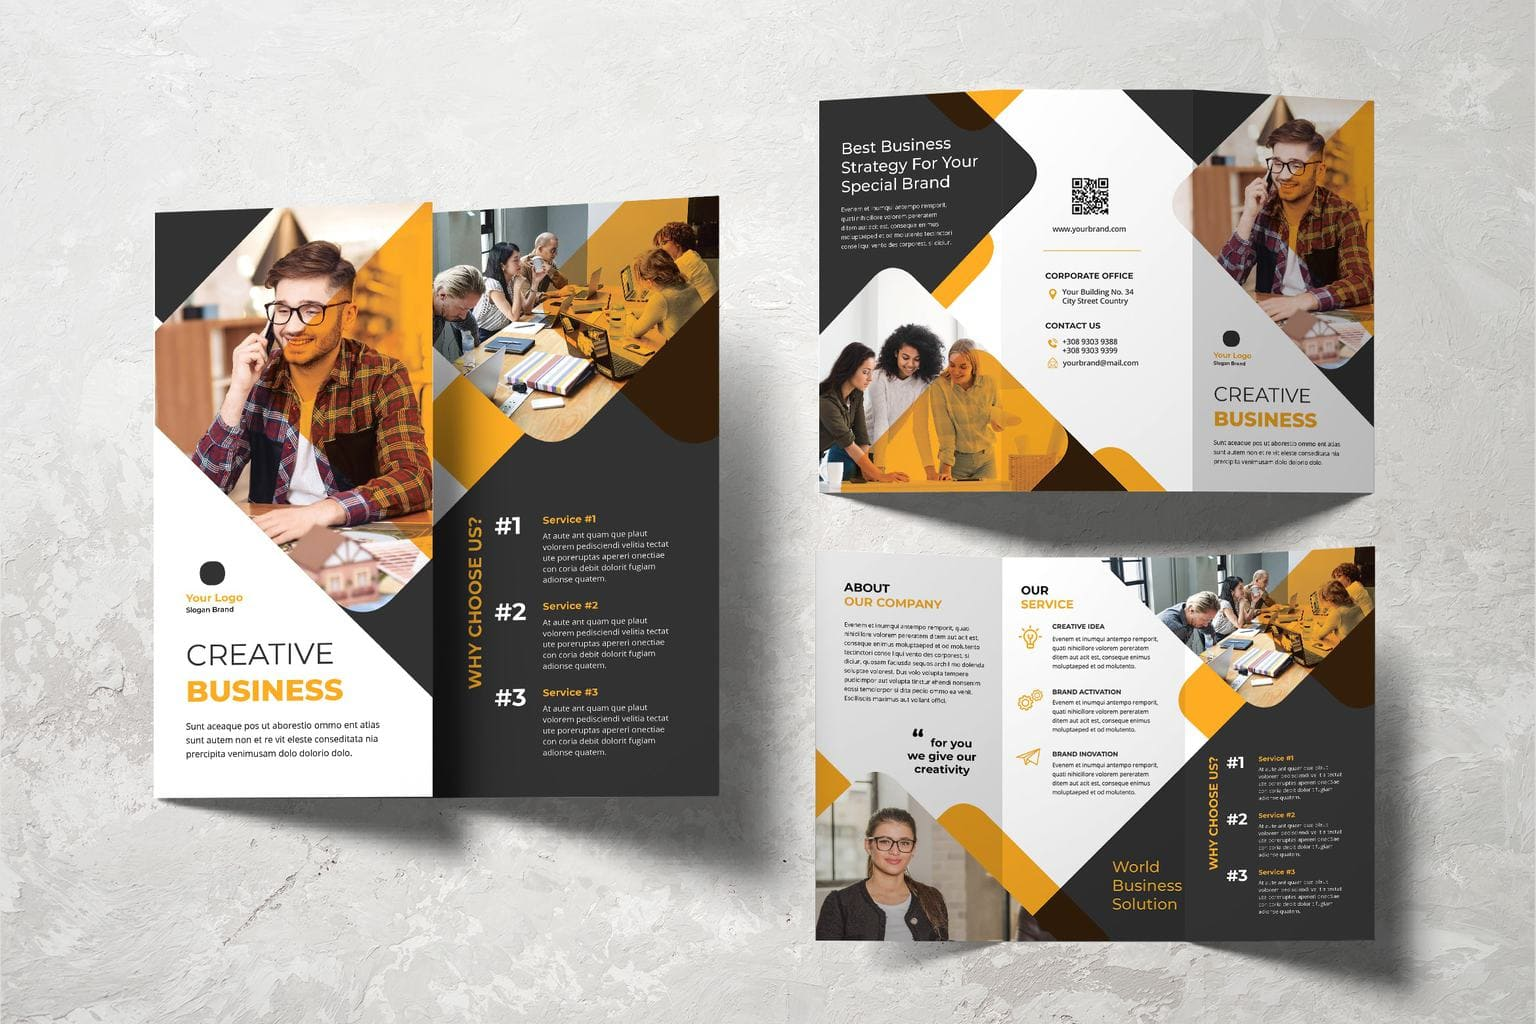 trifold brochure business strategy for brand